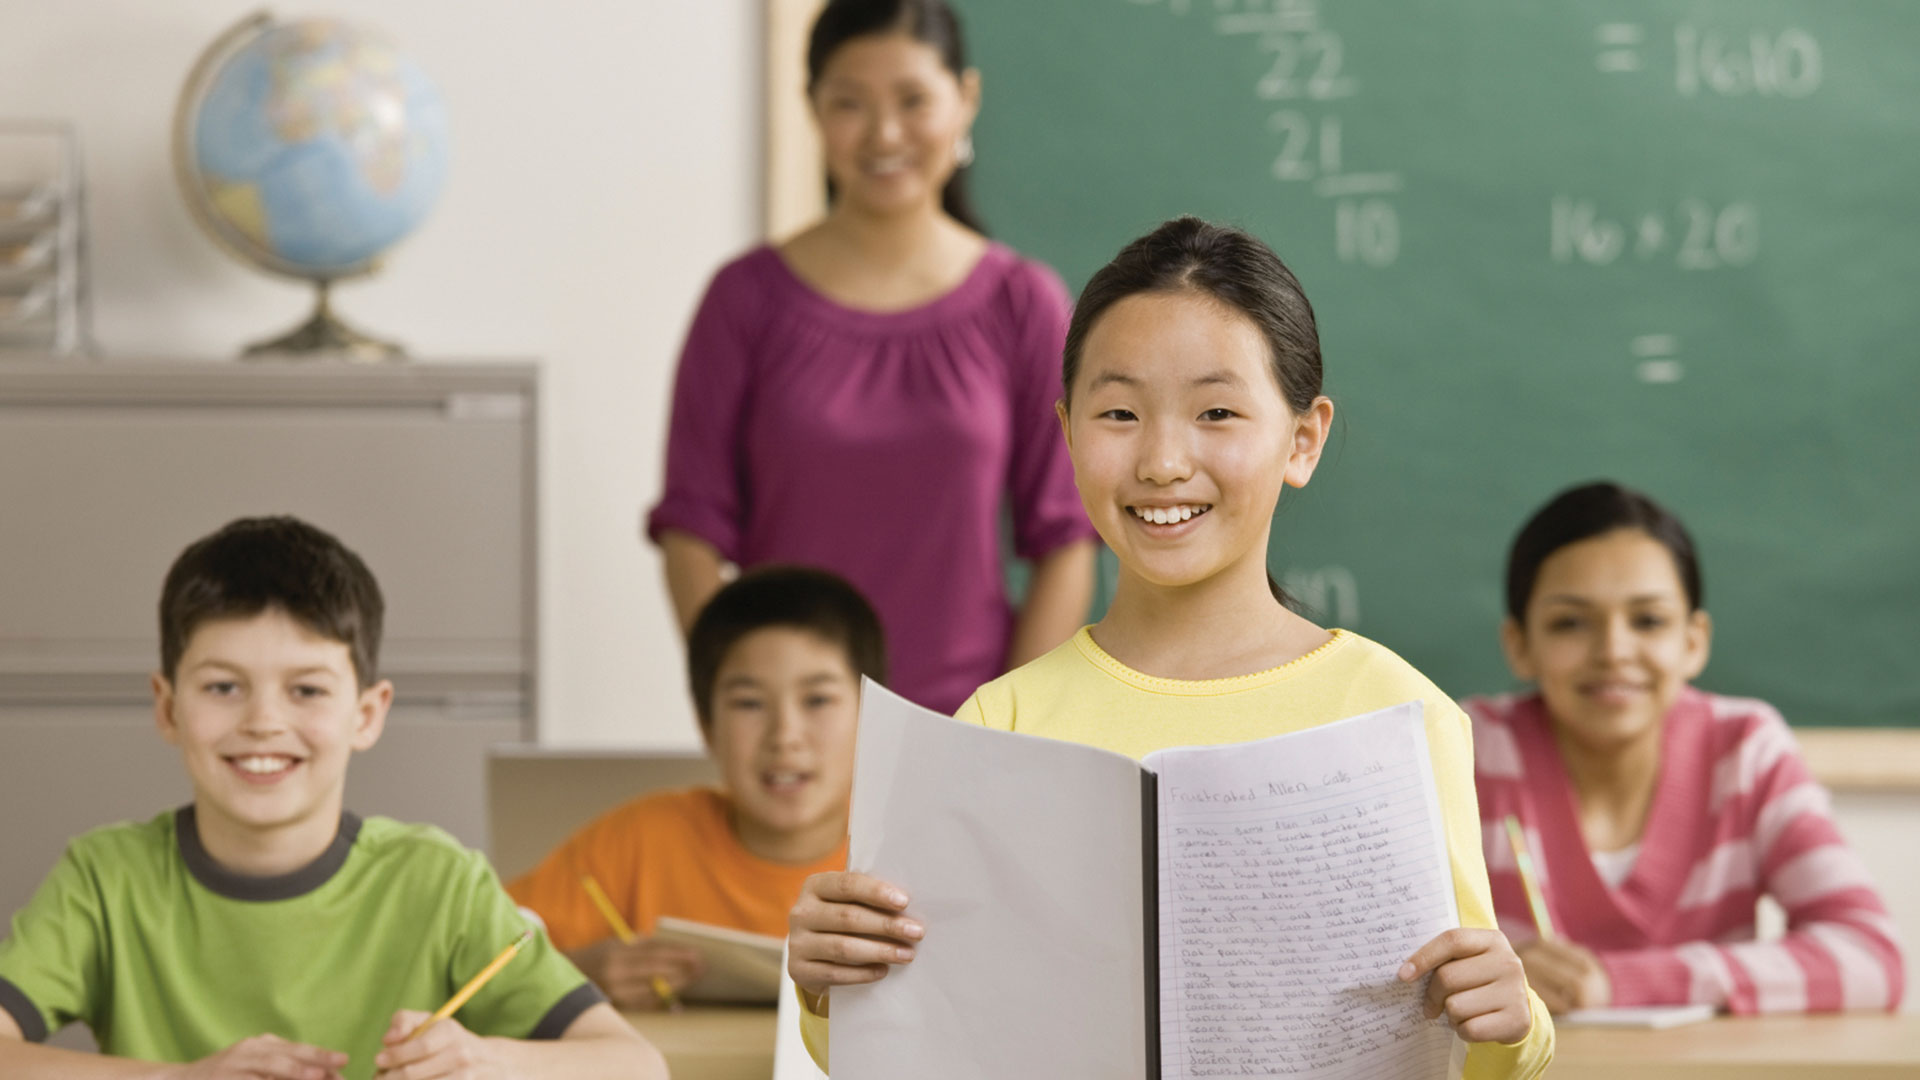 Math Tuition Centres in Singapore - Good and Affordable Math Tutoring